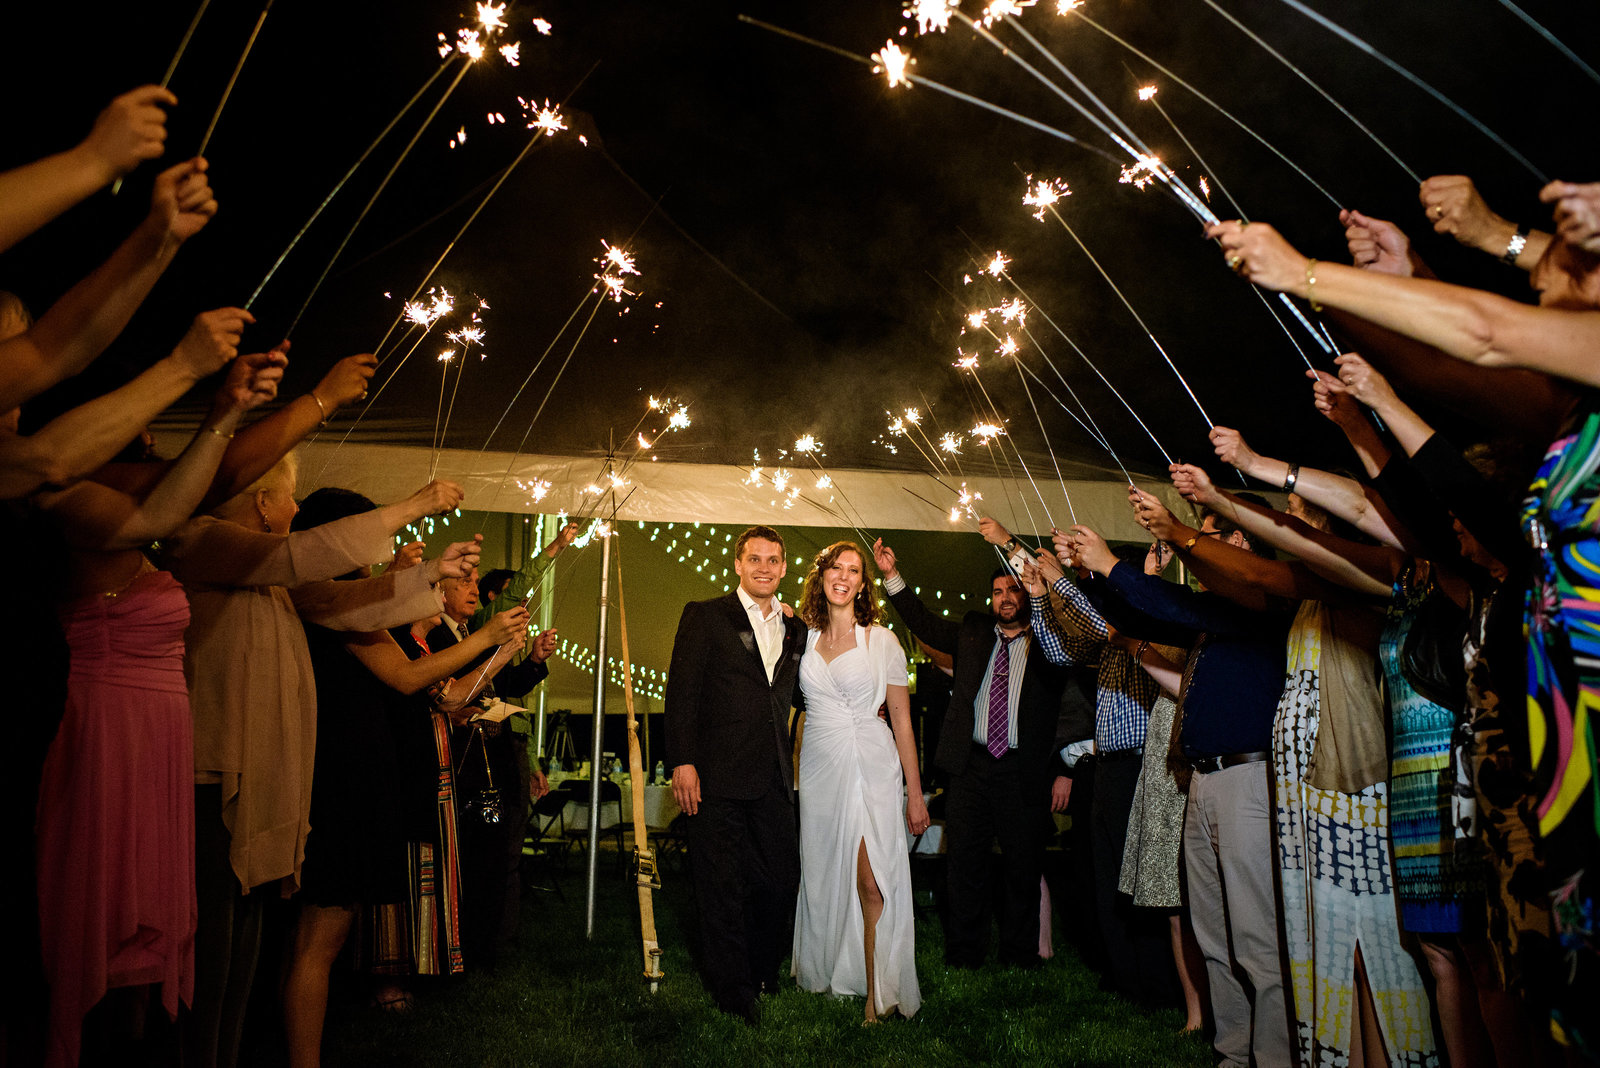 Wedding guests hold sparklers over a bride and groom as they leave the reception in bucks county PA.